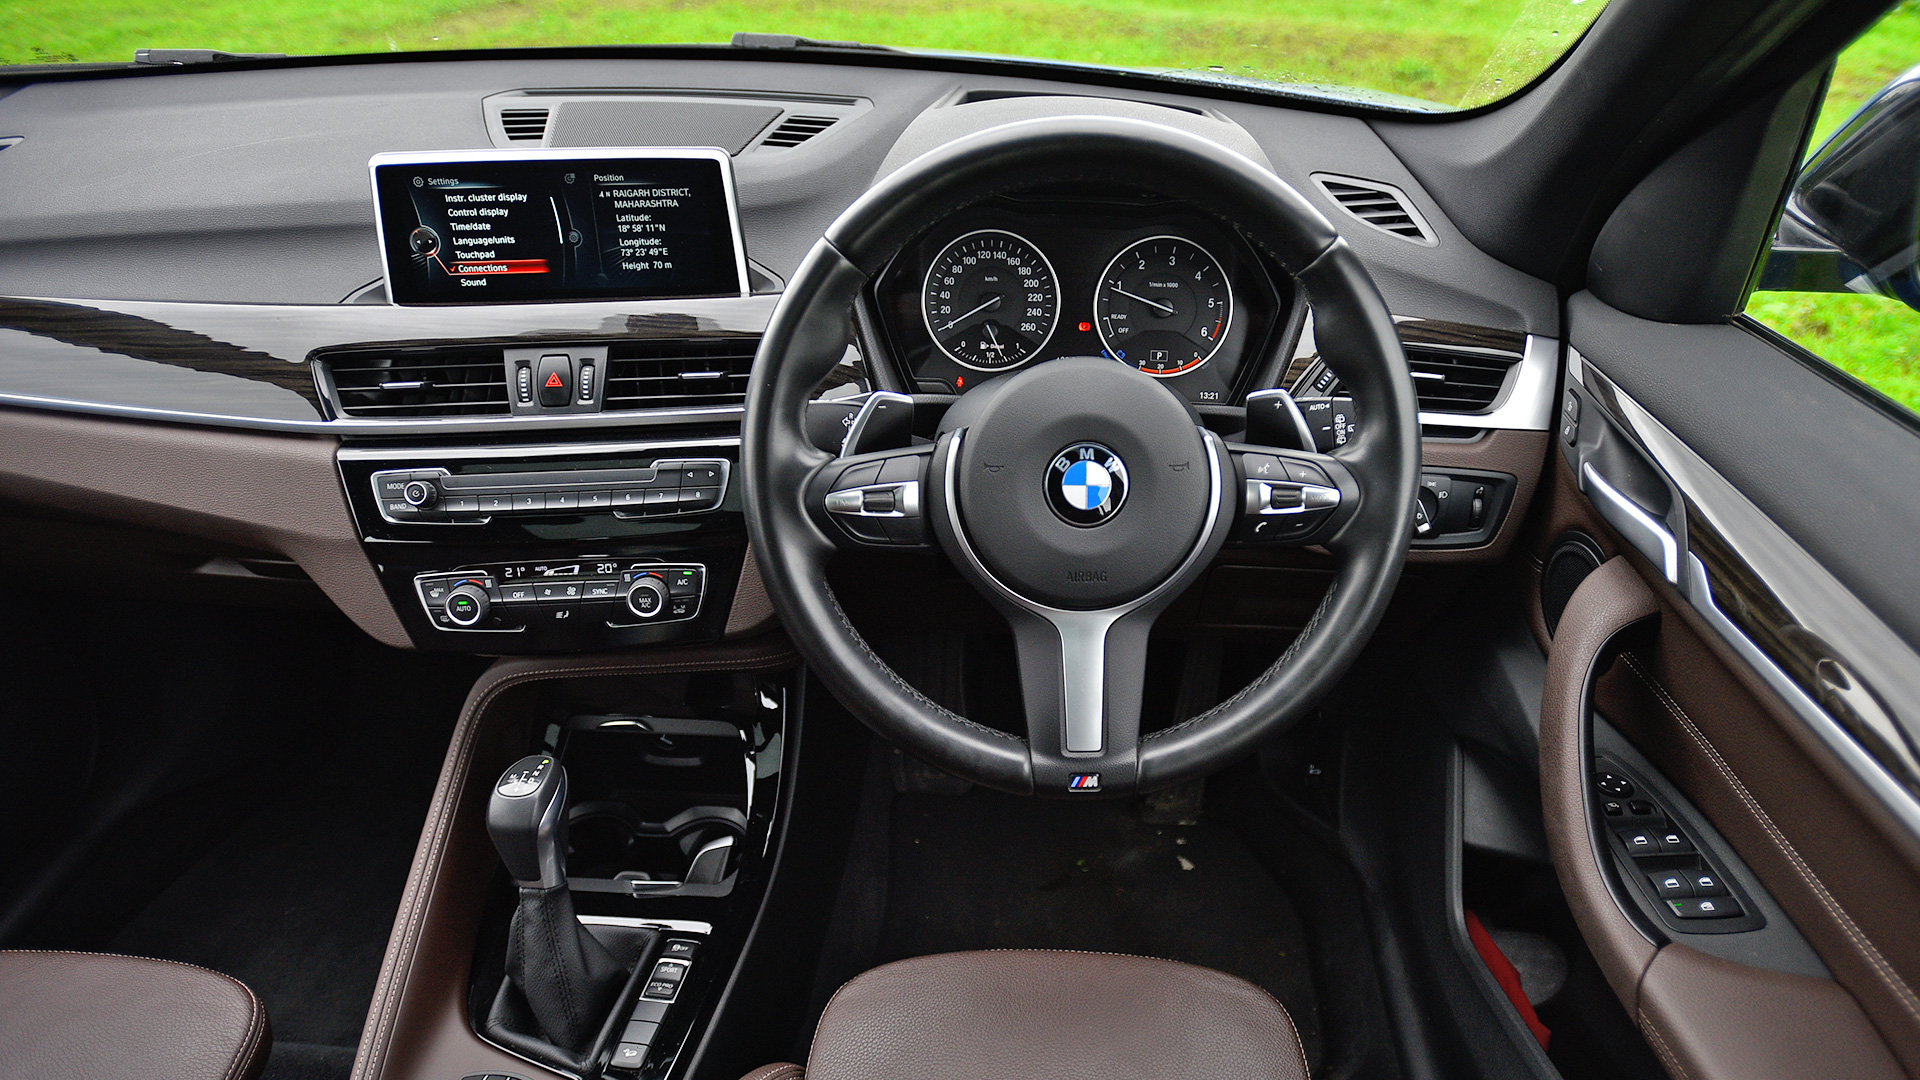 bmw x1 2018 xdrive 20d m sport interior car photos overdrive. Black Bedroom Furniture Sets. Home Design Ideas